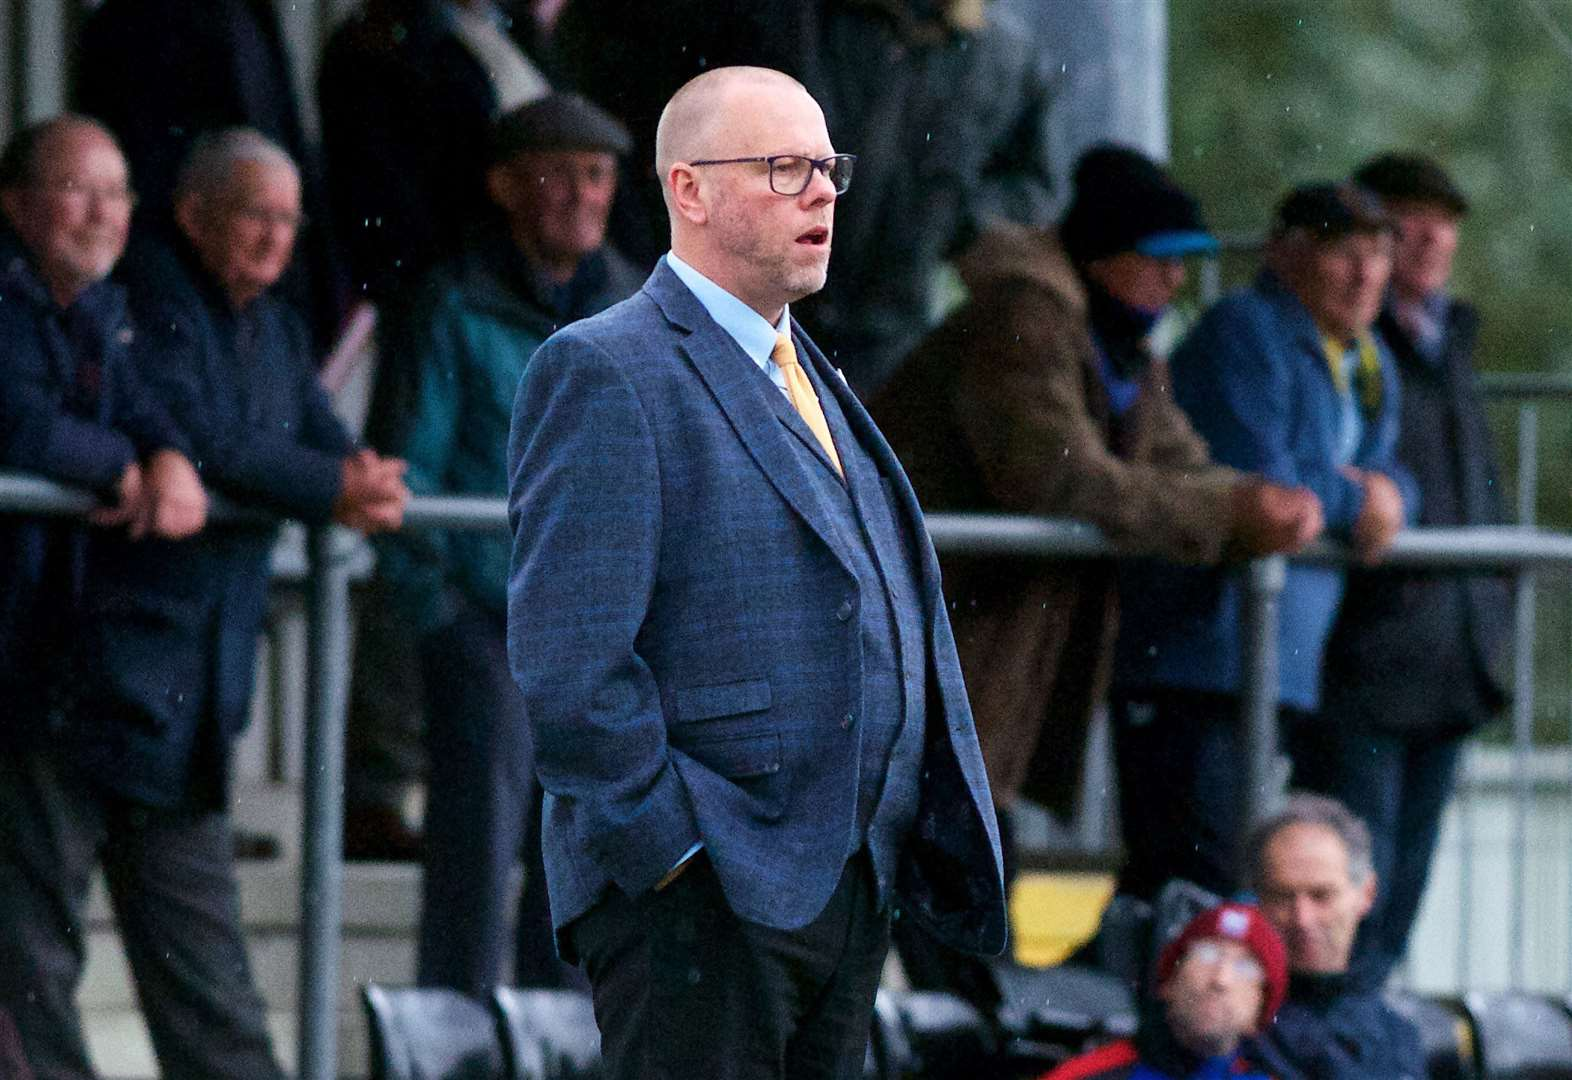 Player redundancies looming at AFC Sudbury led Mark Morsley to decide he needed to step down as manager